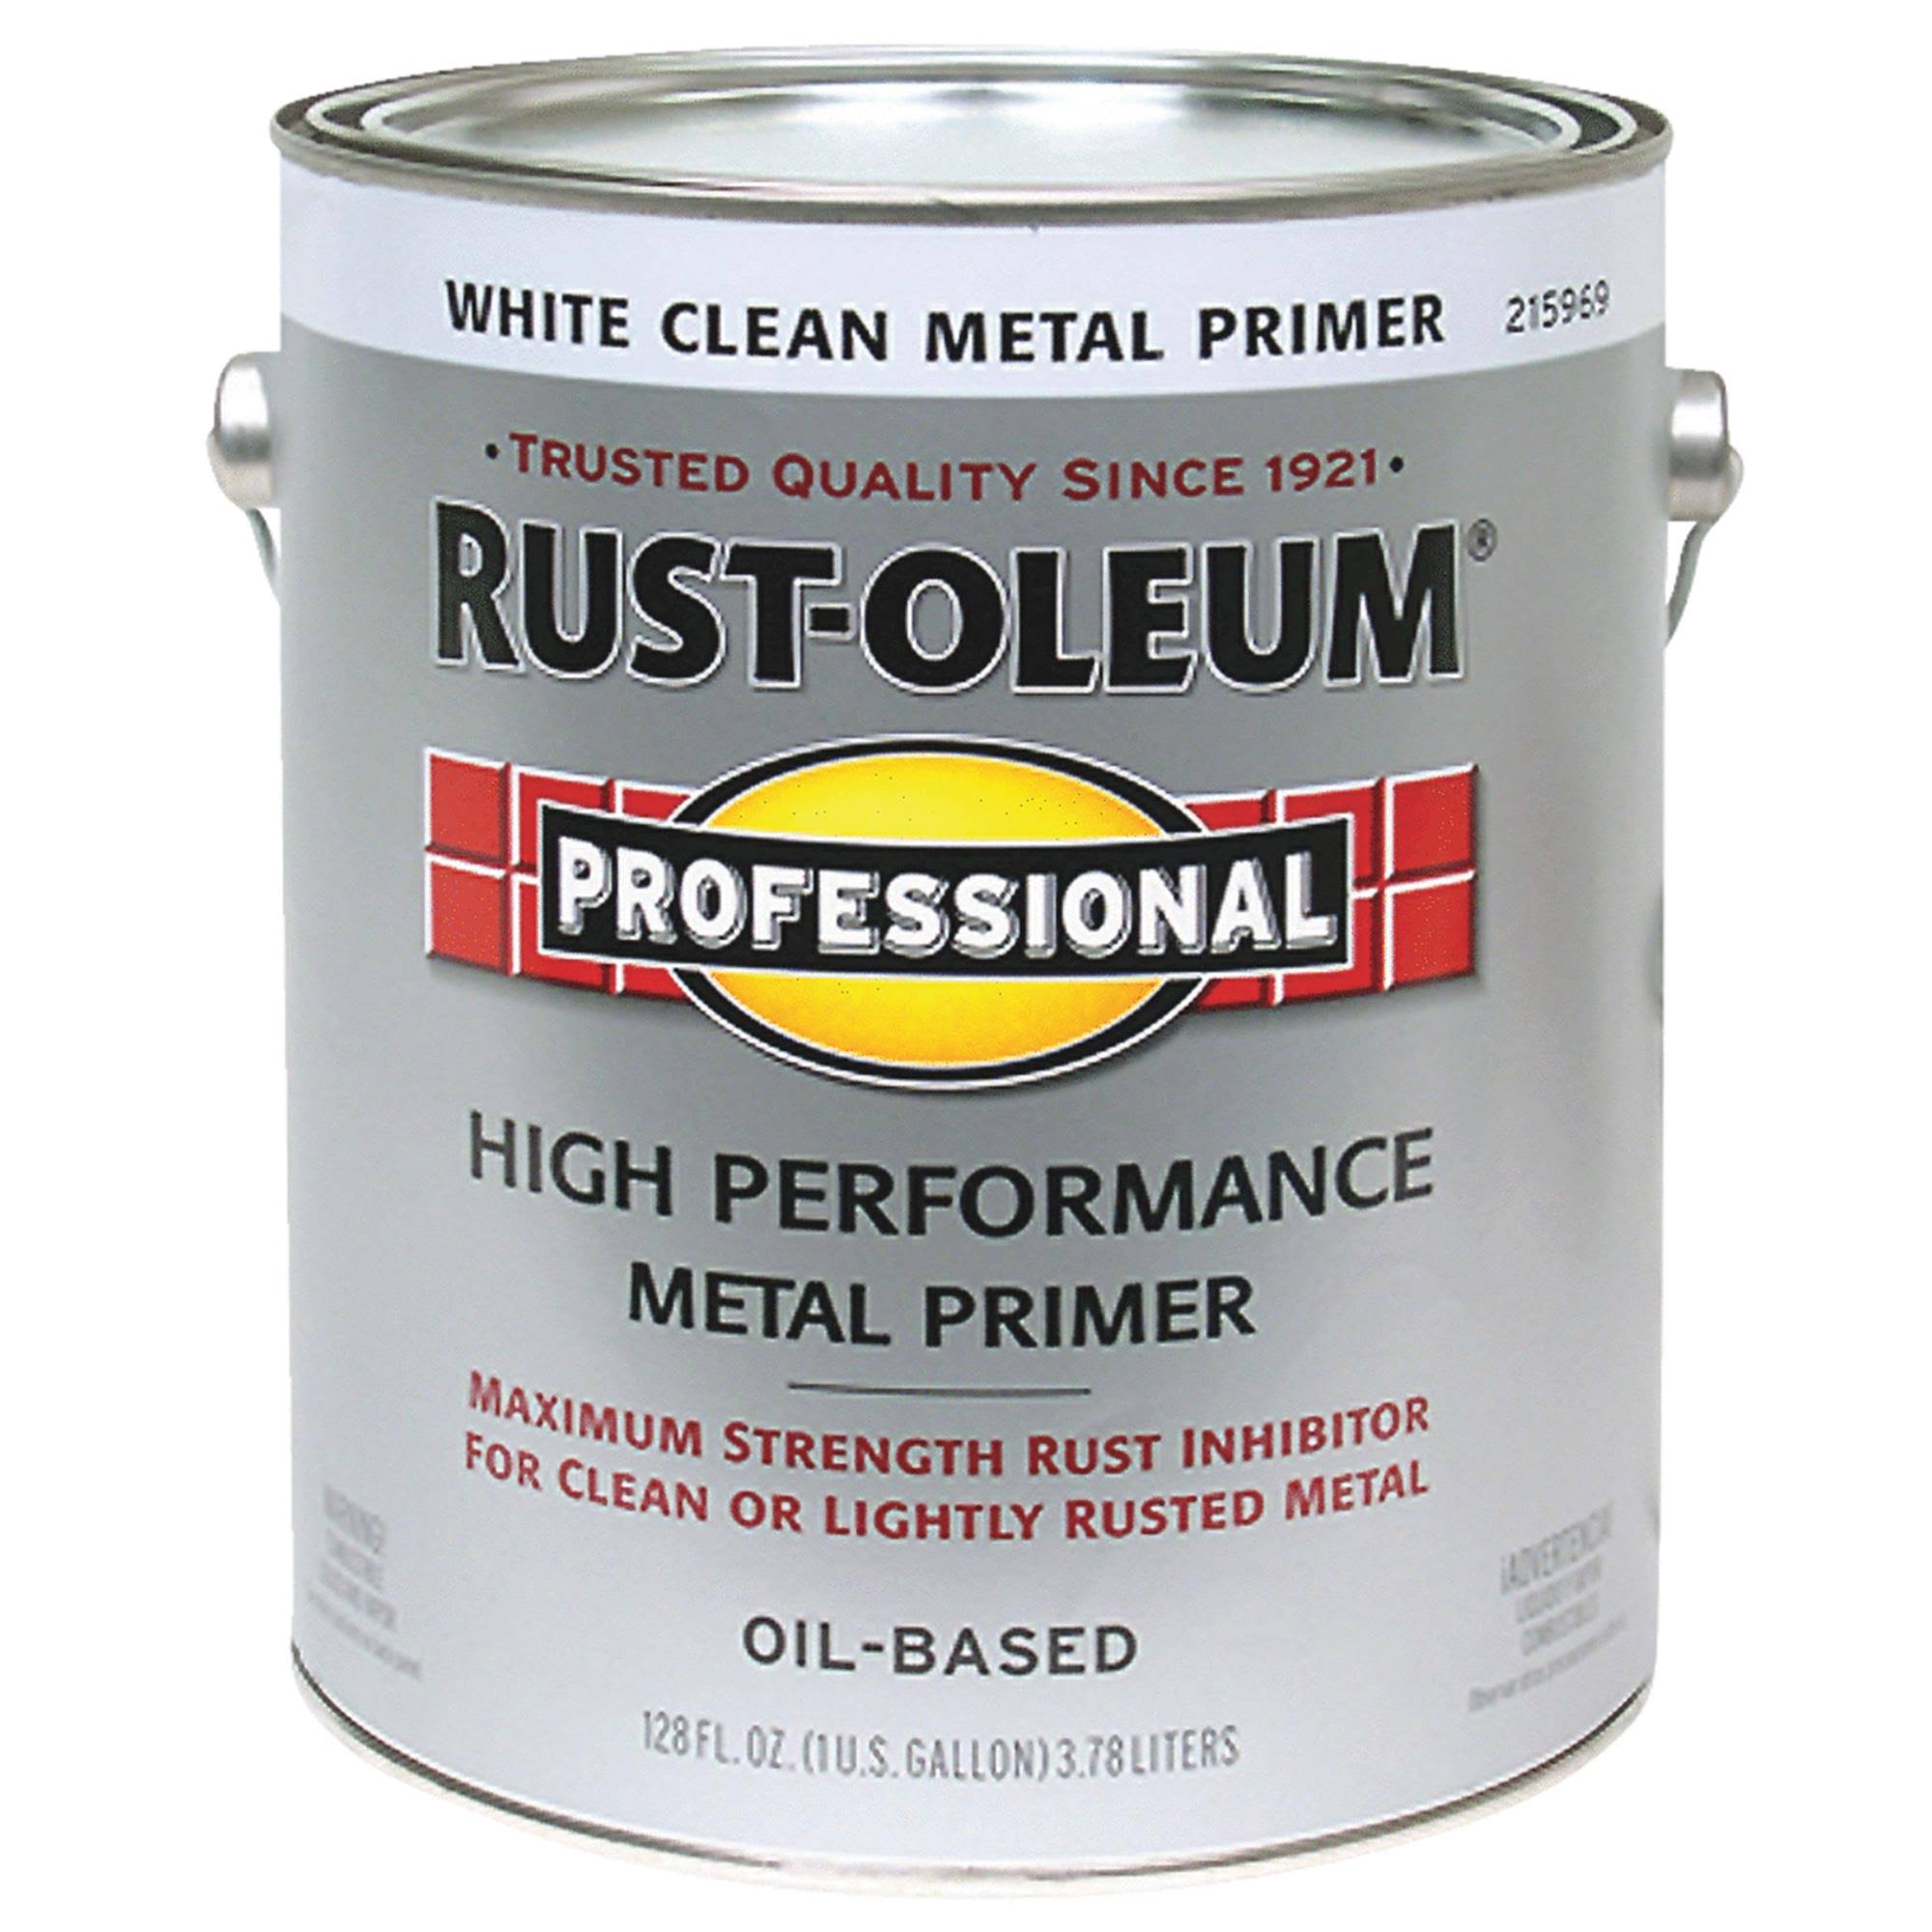 Rustoleum White Clean Professional Oil Based Metal Primer - 3.78L